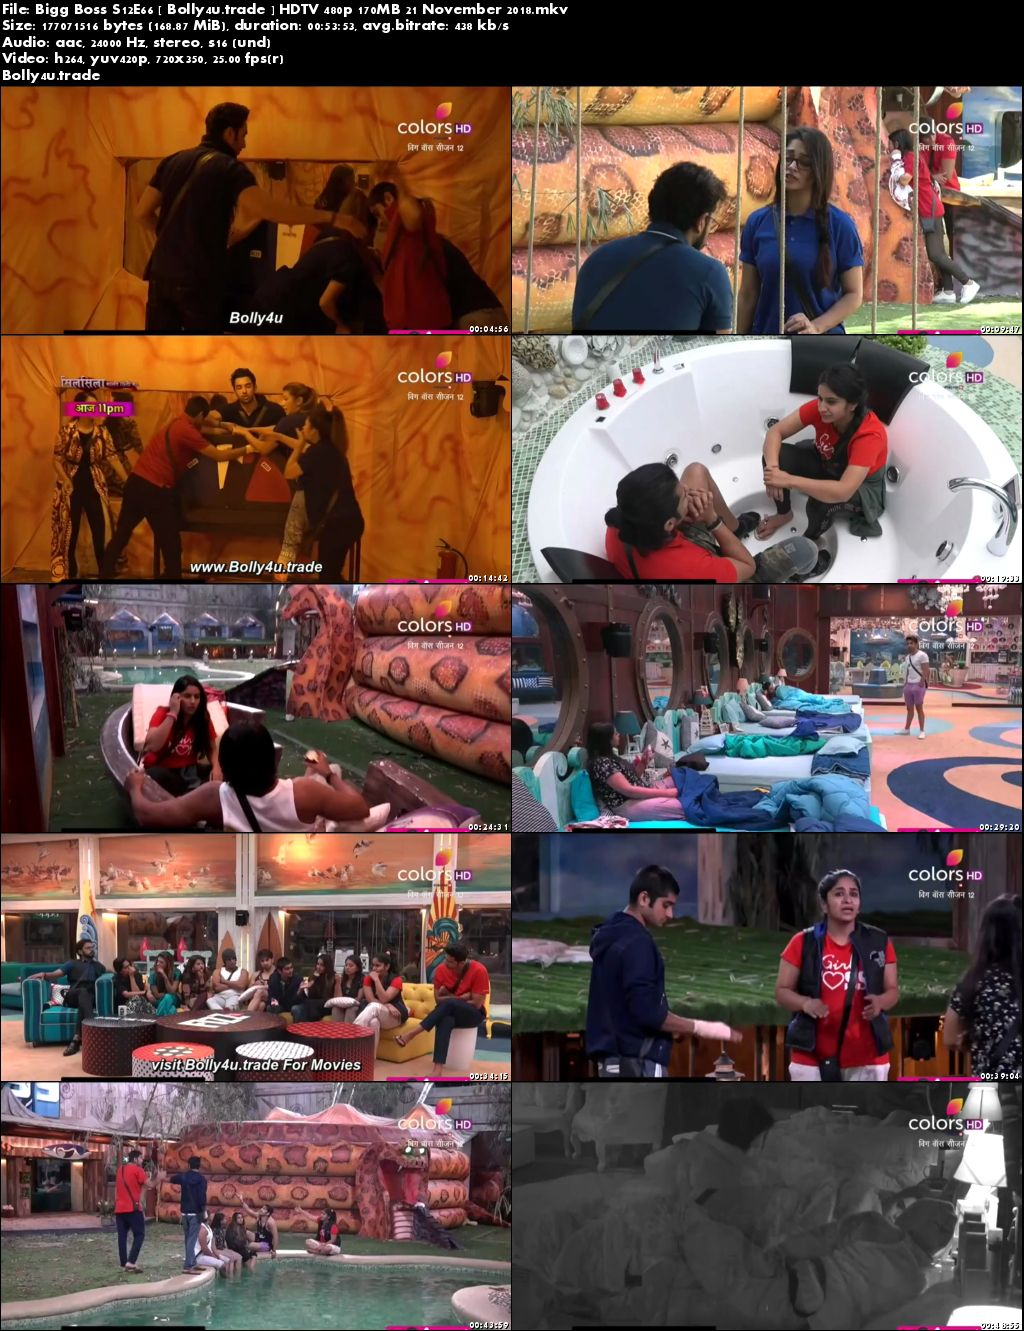 Bigg Boss S12E66 HDTV 480p 170MB 21 November 2018 Download